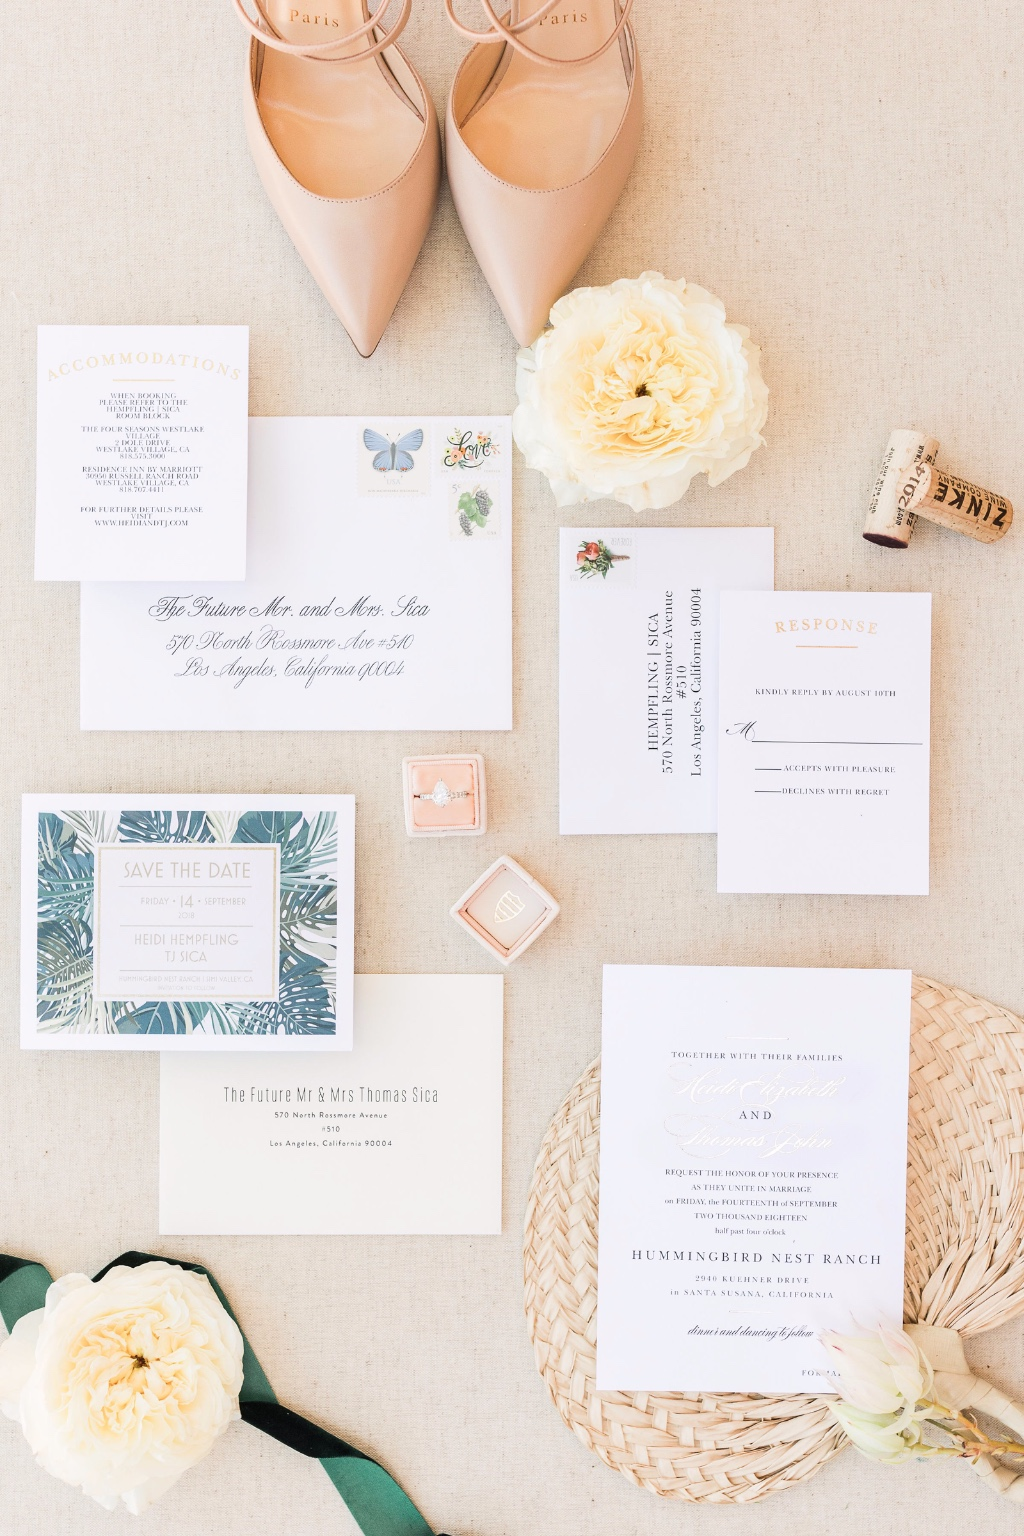 Our Elegant Vintage Foil Portrait Wedding invitation and Response cards add a perfect touch of elegance to any destination wedding